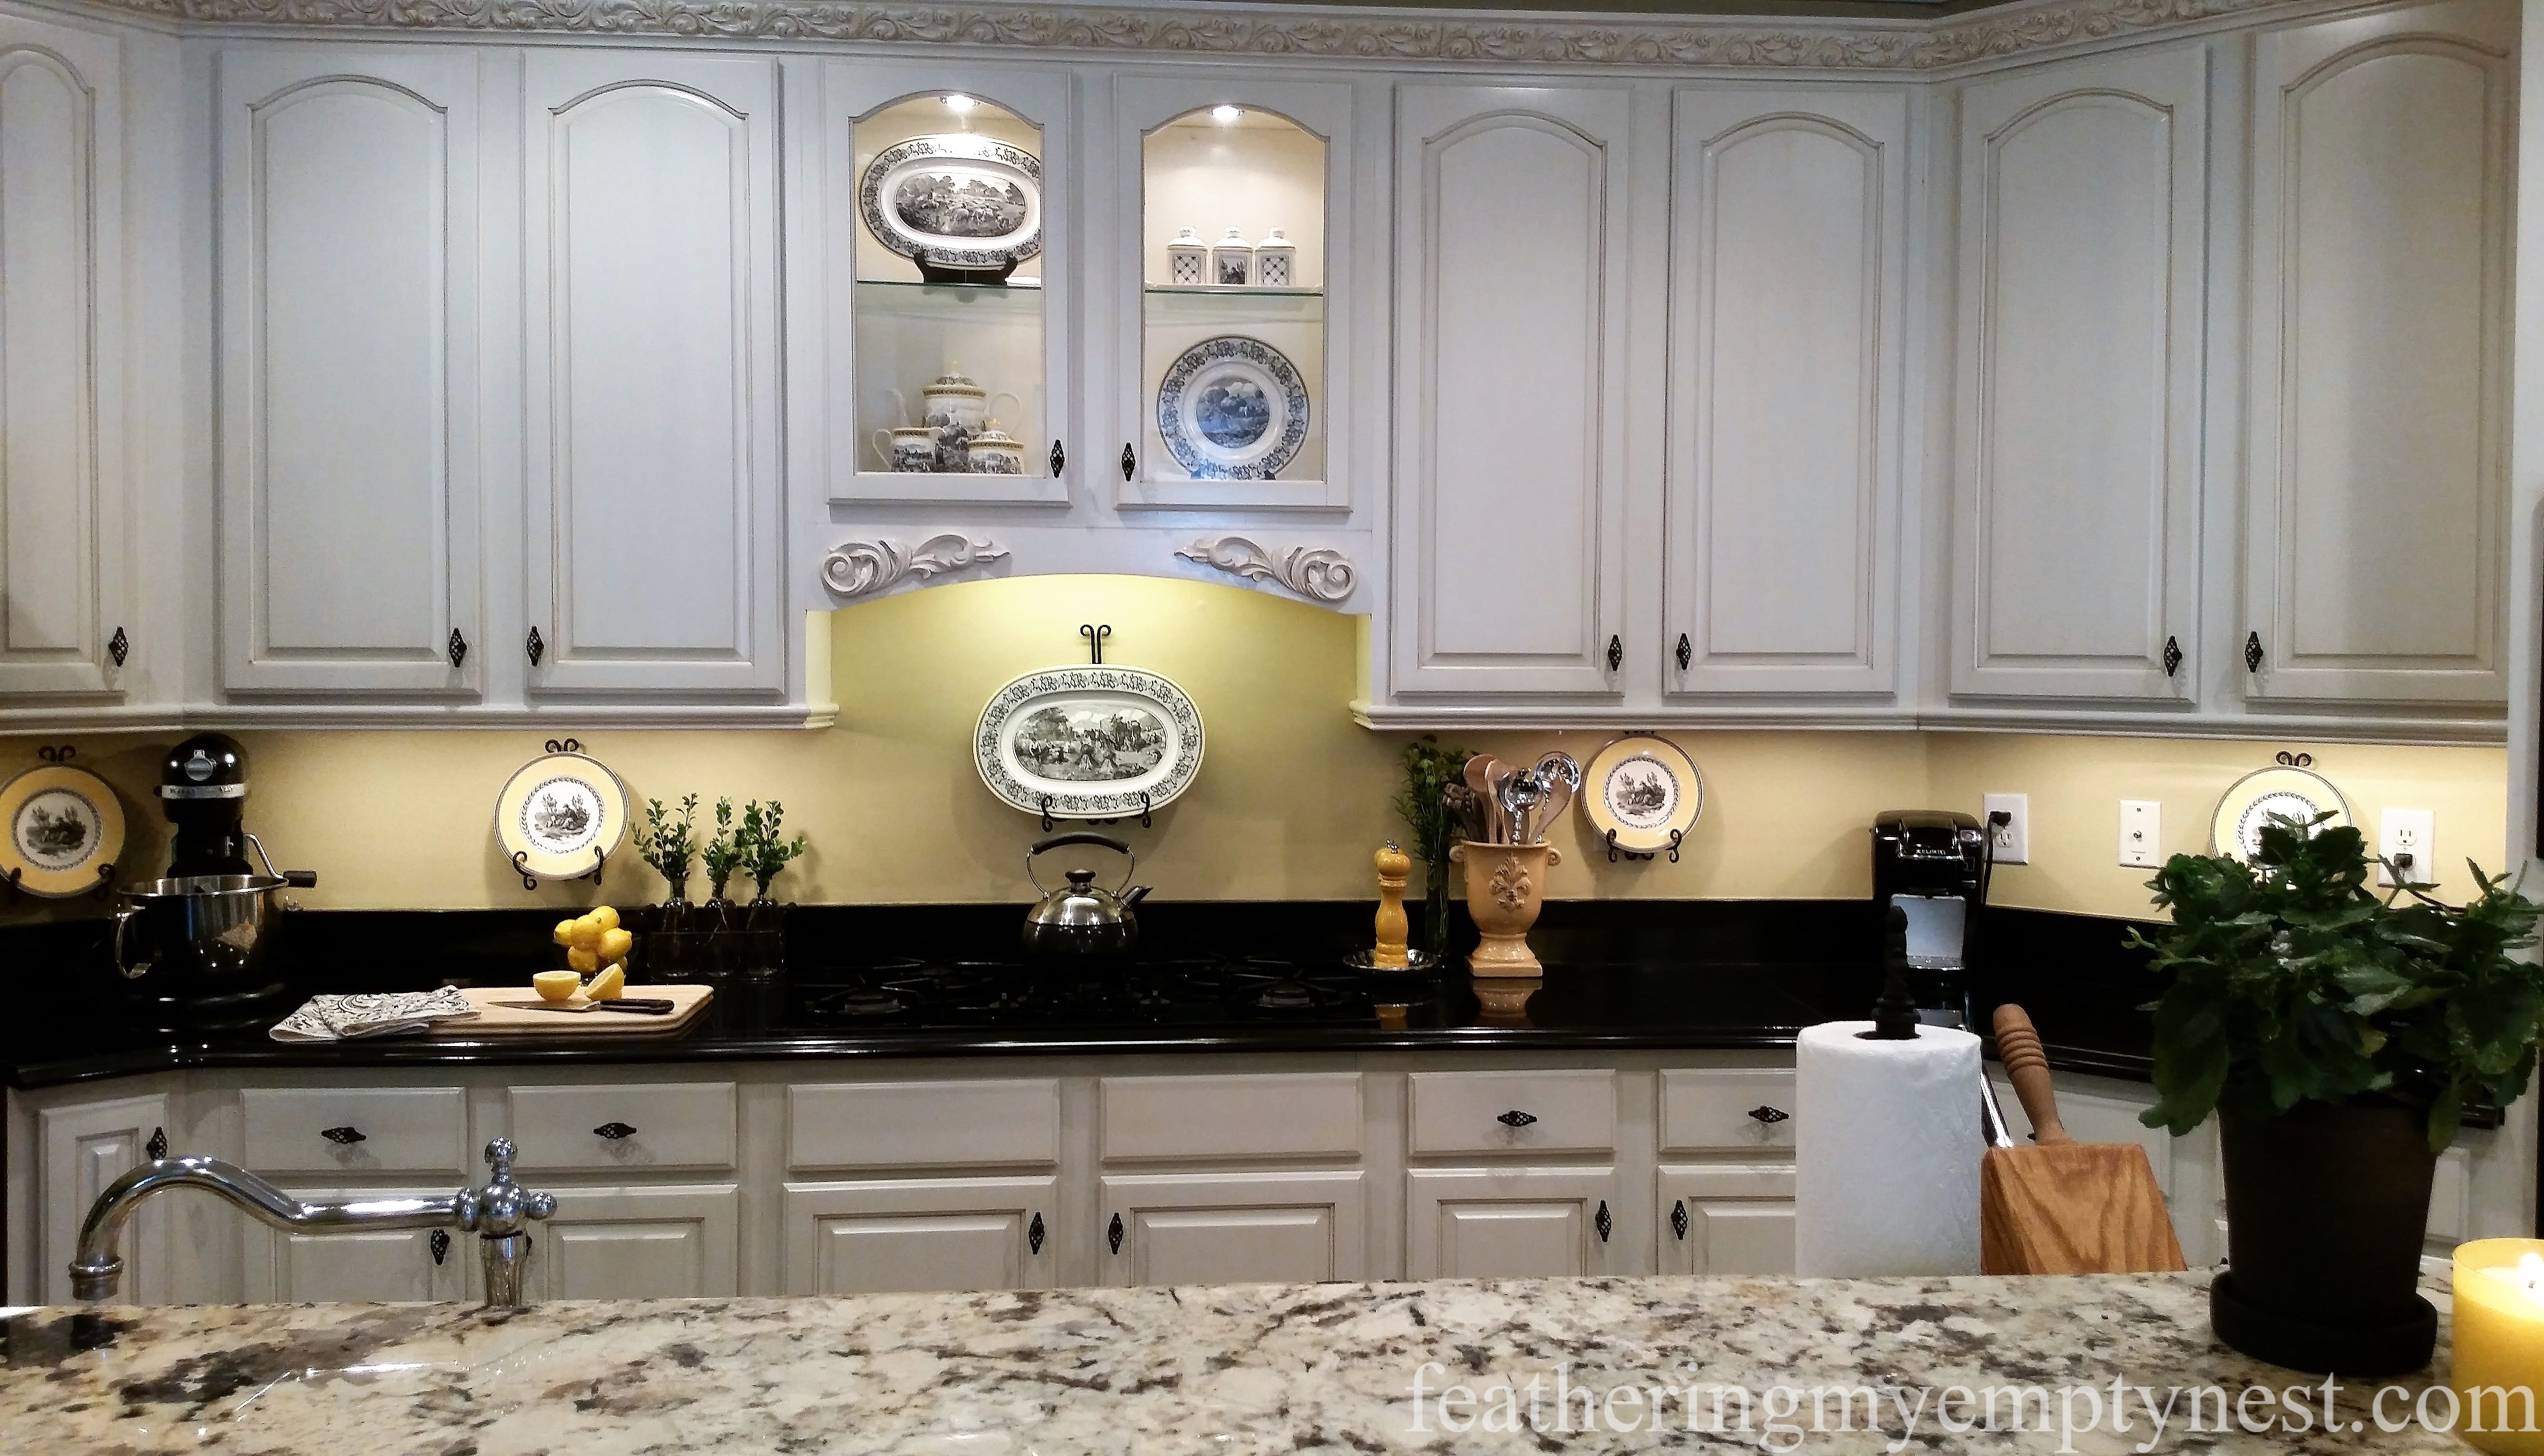 Painted and glazed kitchen cabinets with black birdcage knobs-Inexpensive Kitchen Updates And Camouflage